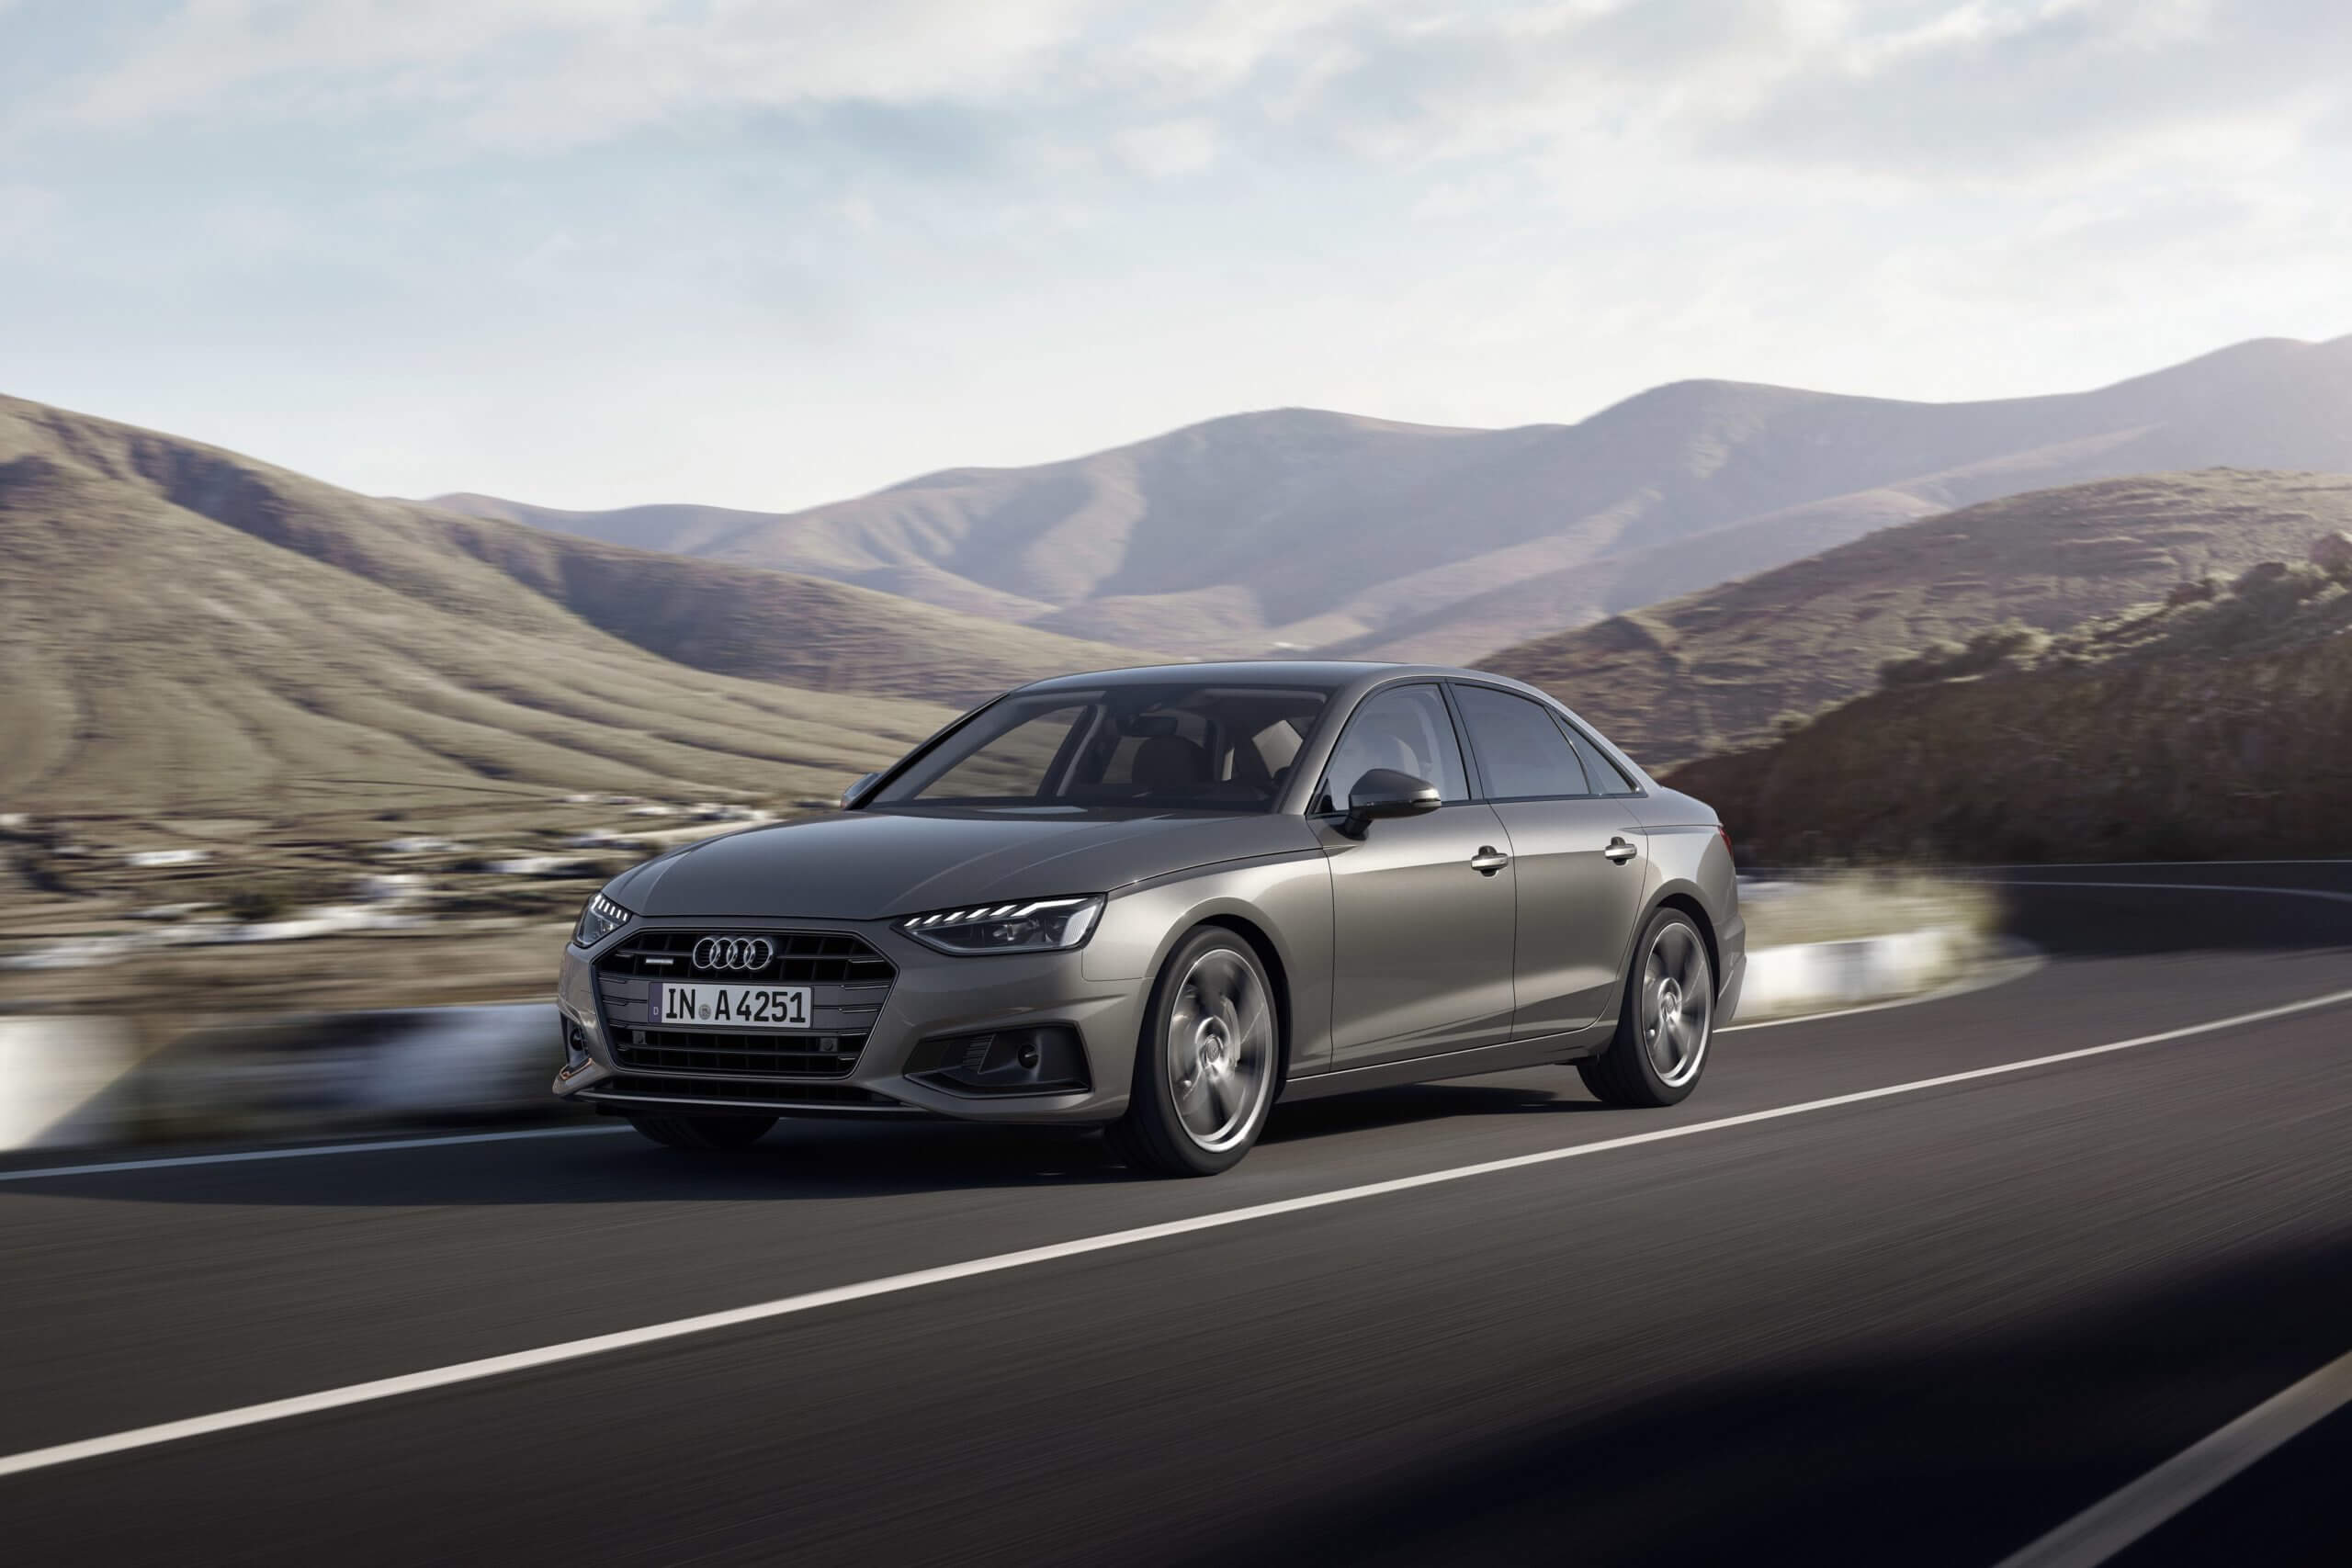 New Audi A4 – More connectivity and hybrid tech, on sale now from S$182k